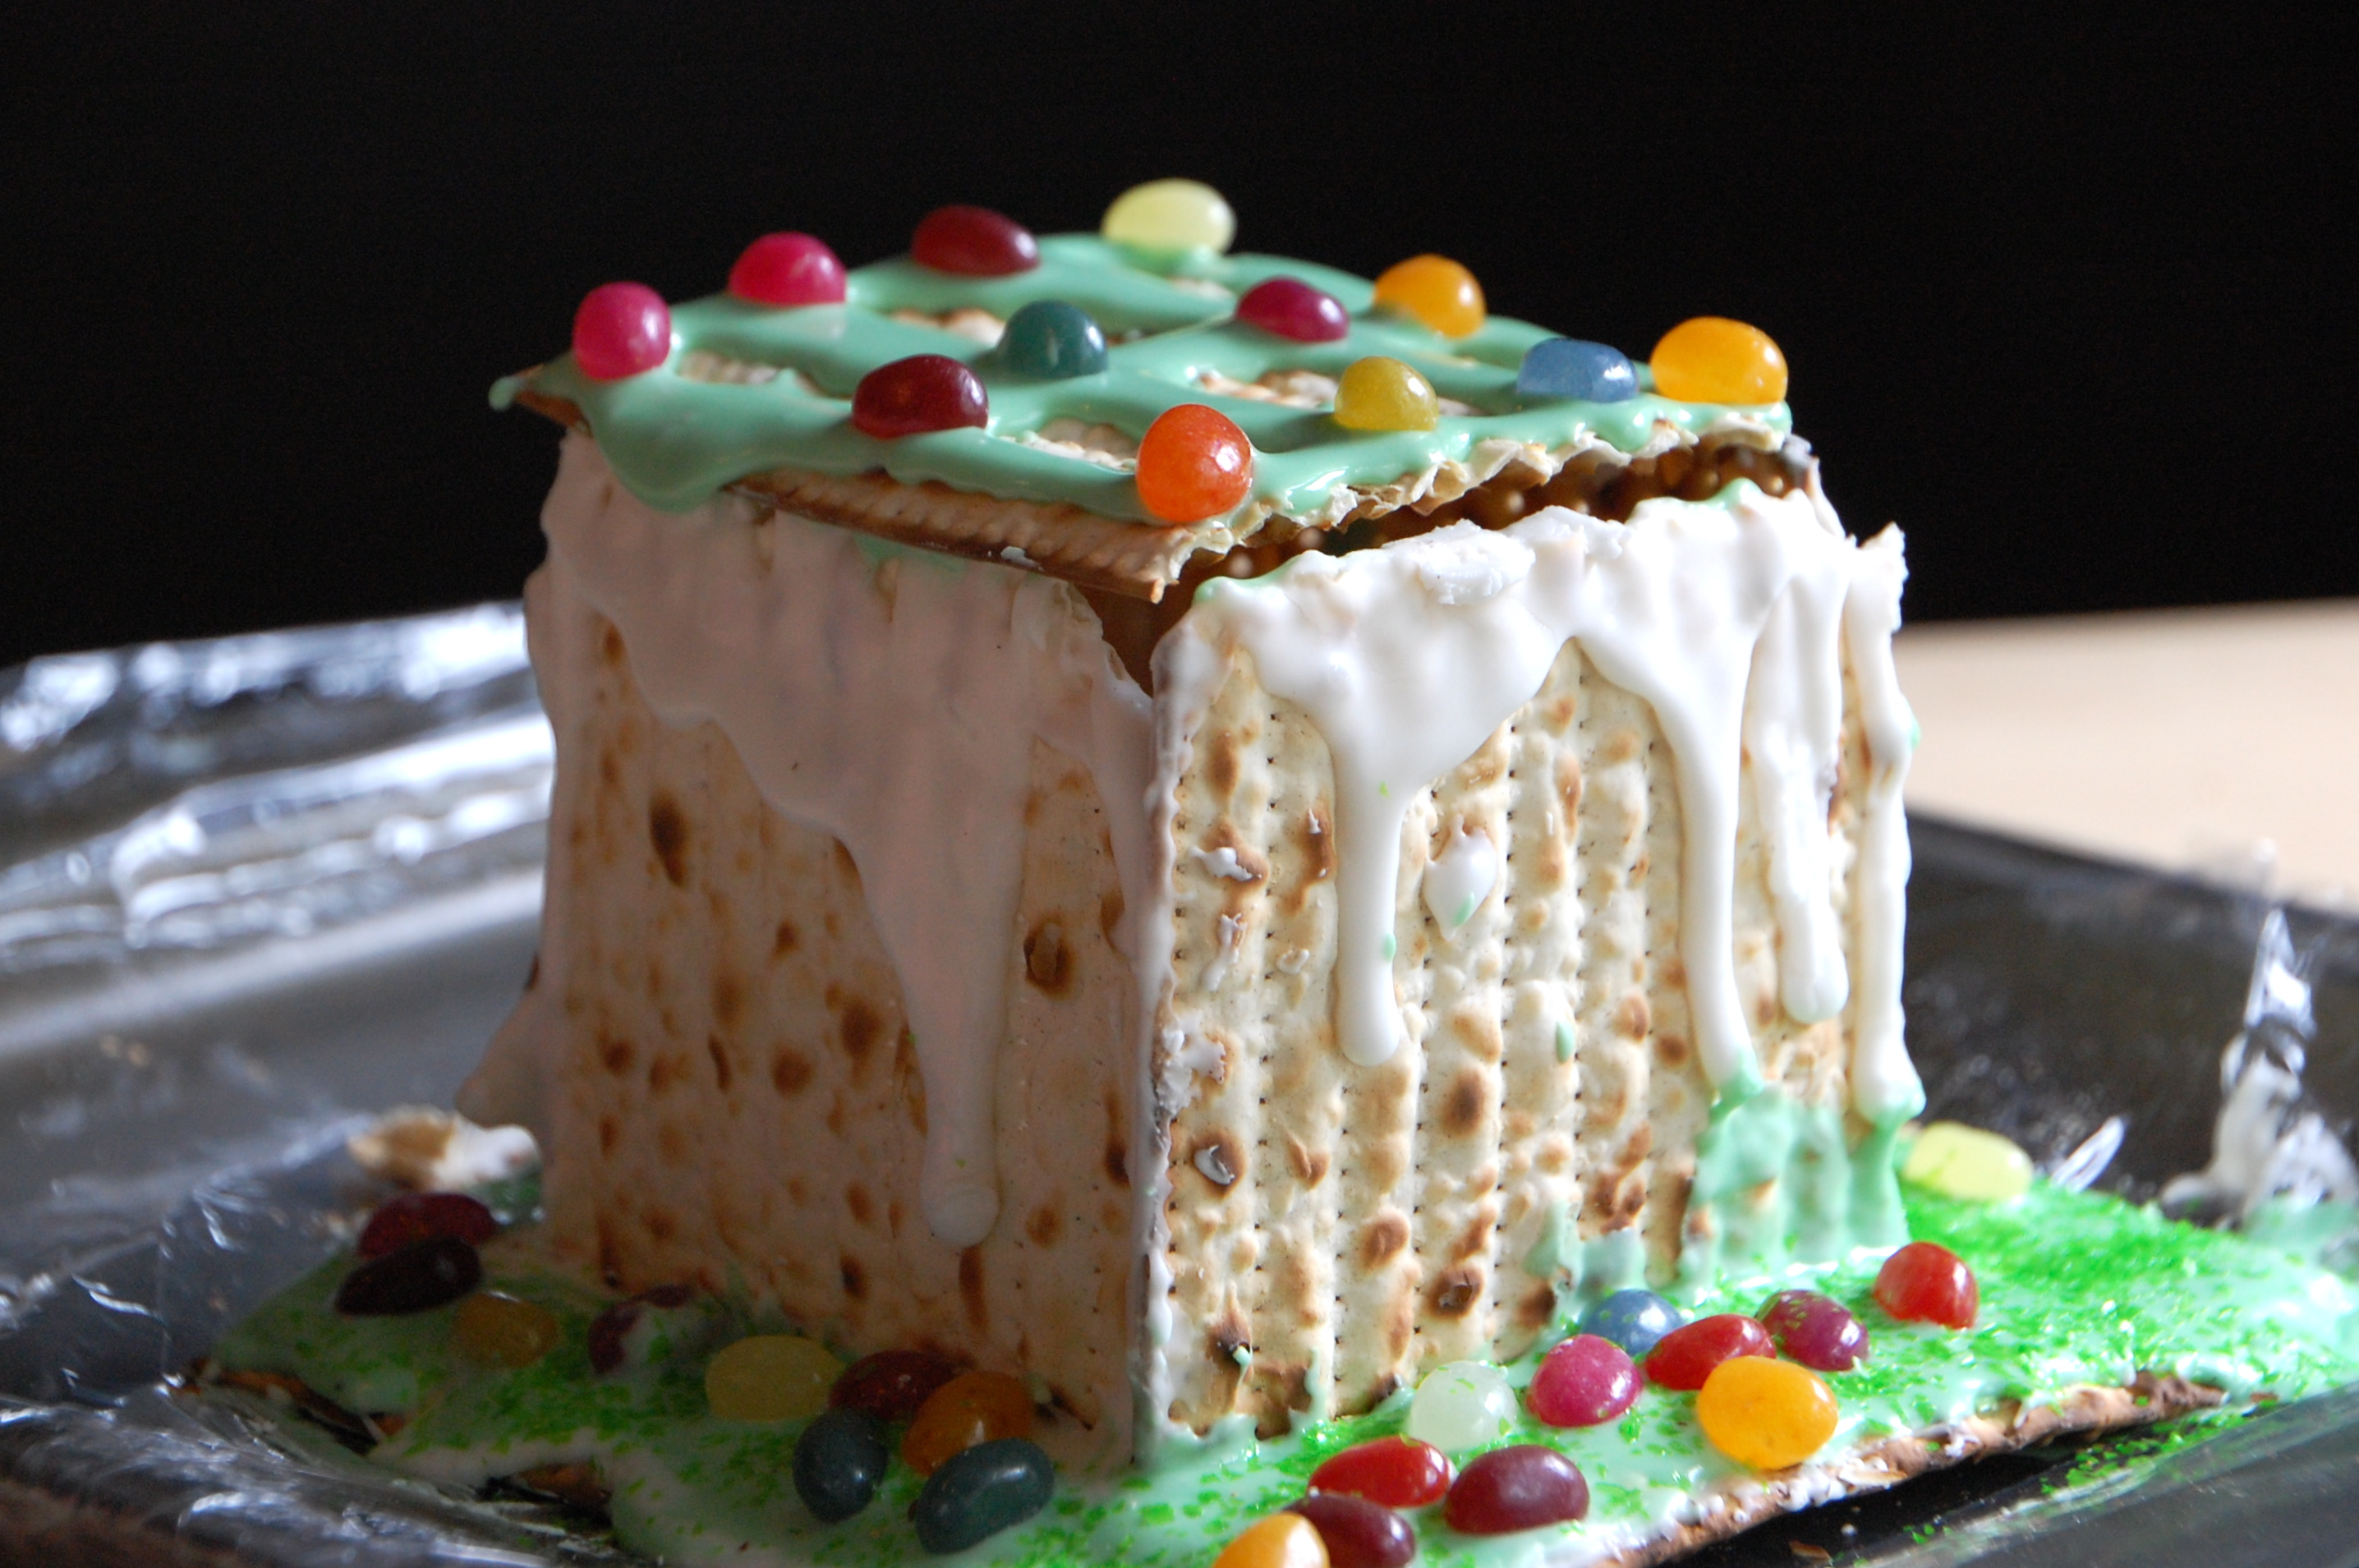 Matzoh gingerbread house